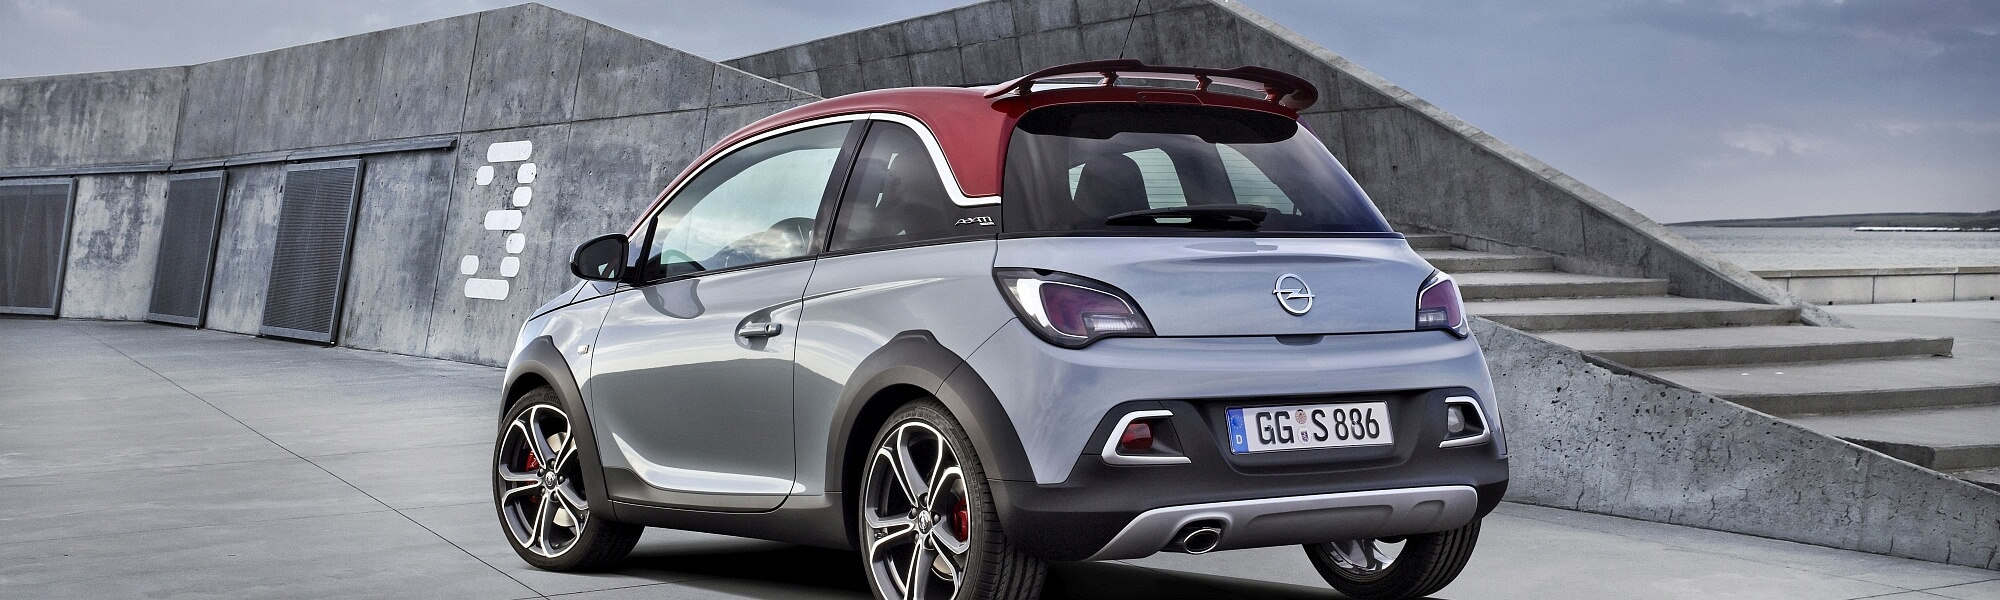 ulmen-opel-adam-rocks-s-slider-4